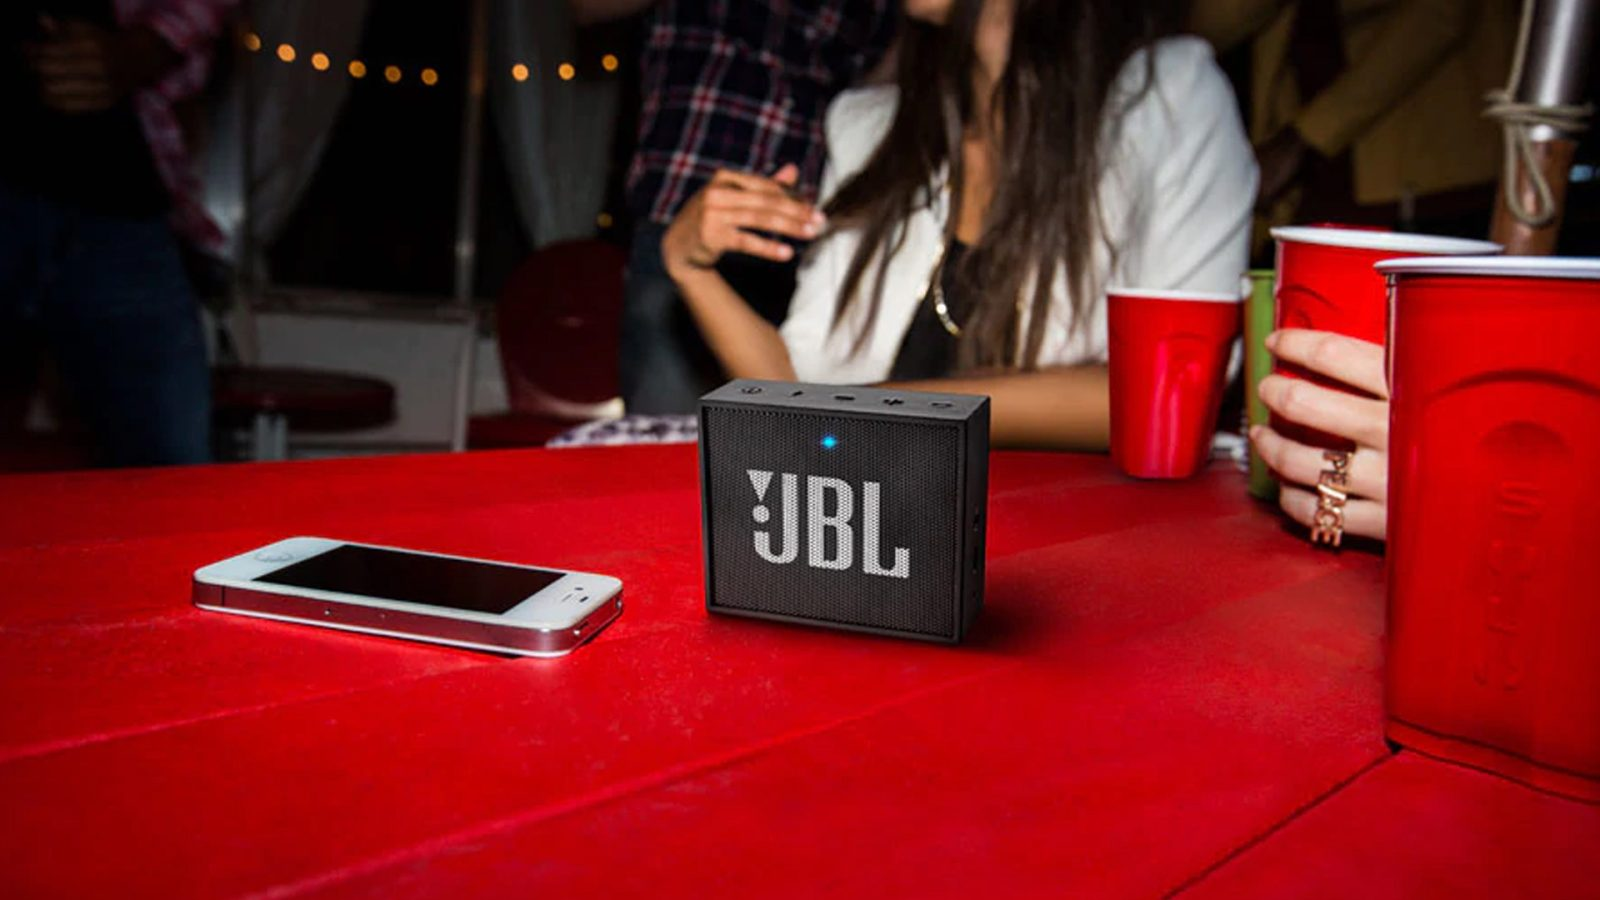 Jbl Has Great Stocking Stuffer Bluetooth Speakers On Sale From 20 Go Portable Mini Speaker